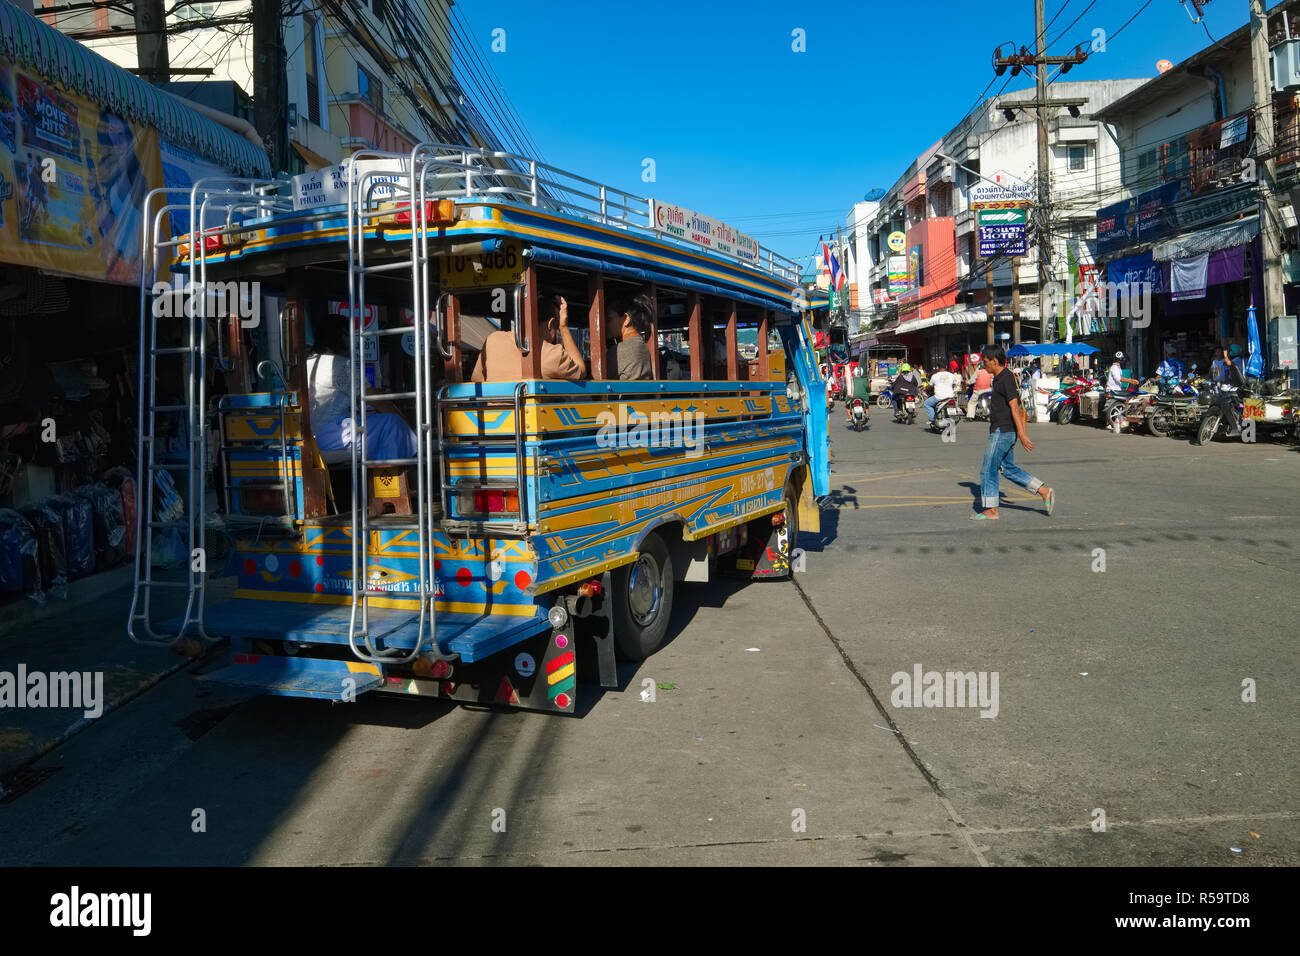 A typical songthaew, a kind of old-time Thai bus, leaving the market in Phuket Town for one of the nearby beaches, Phuket, Thailand - Stock Image